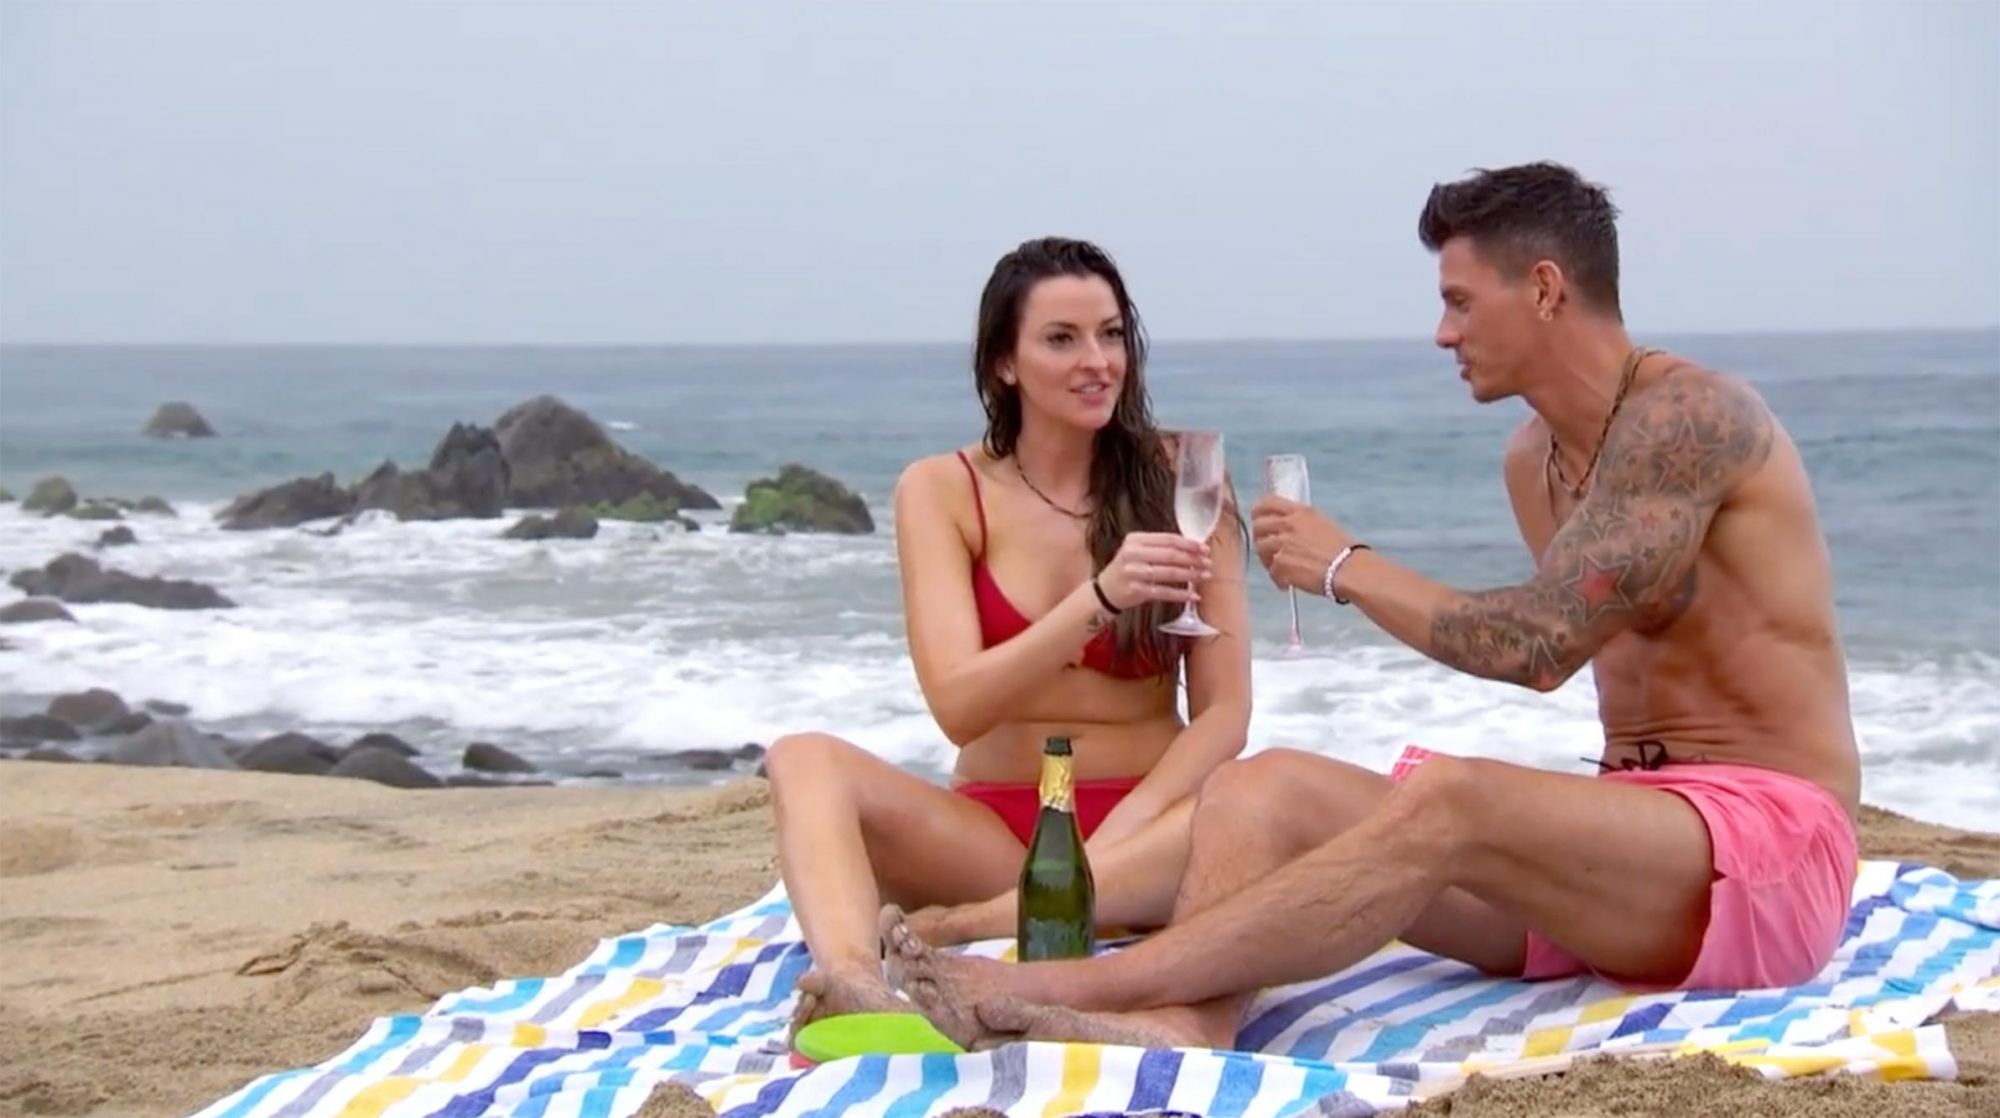 Bachelor in Paradise - Tia and Kenny